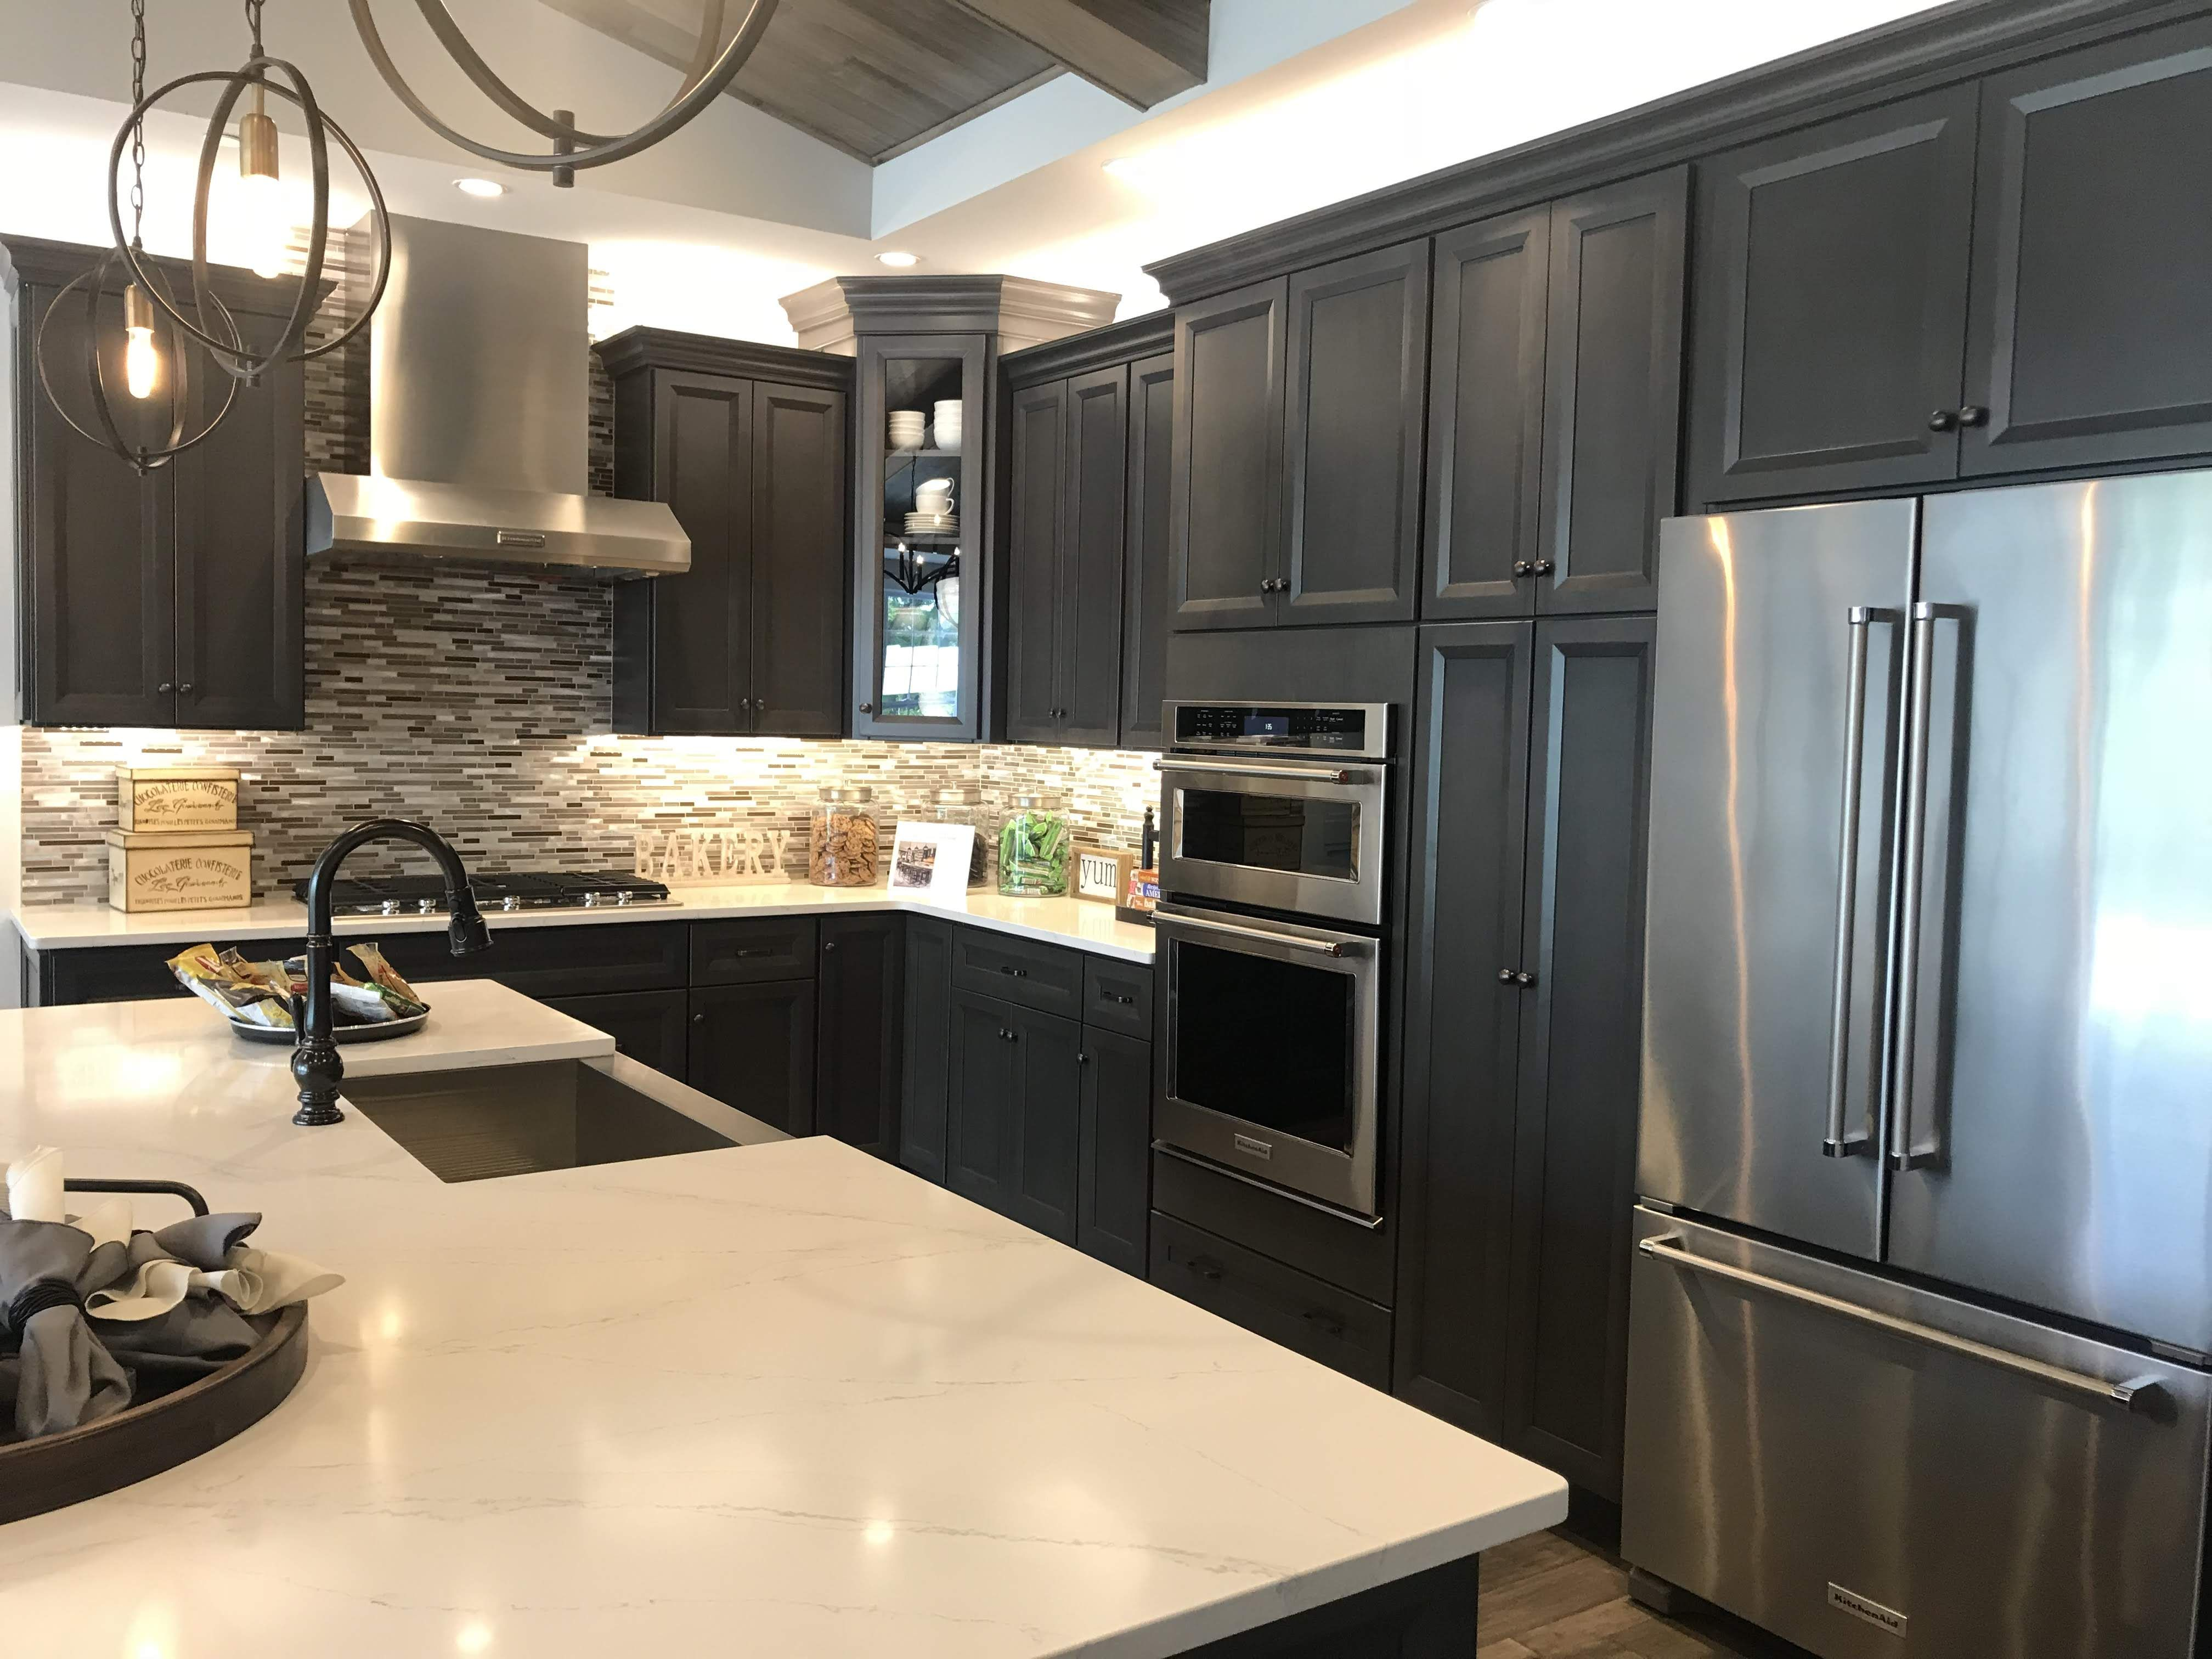 Beautiful Traditional Kitchen Monaco Door Style With Pewter Color Kitchendesign Dreamkitchen Farmsink Kitchen Traditional Kitchen Dream Kitchen